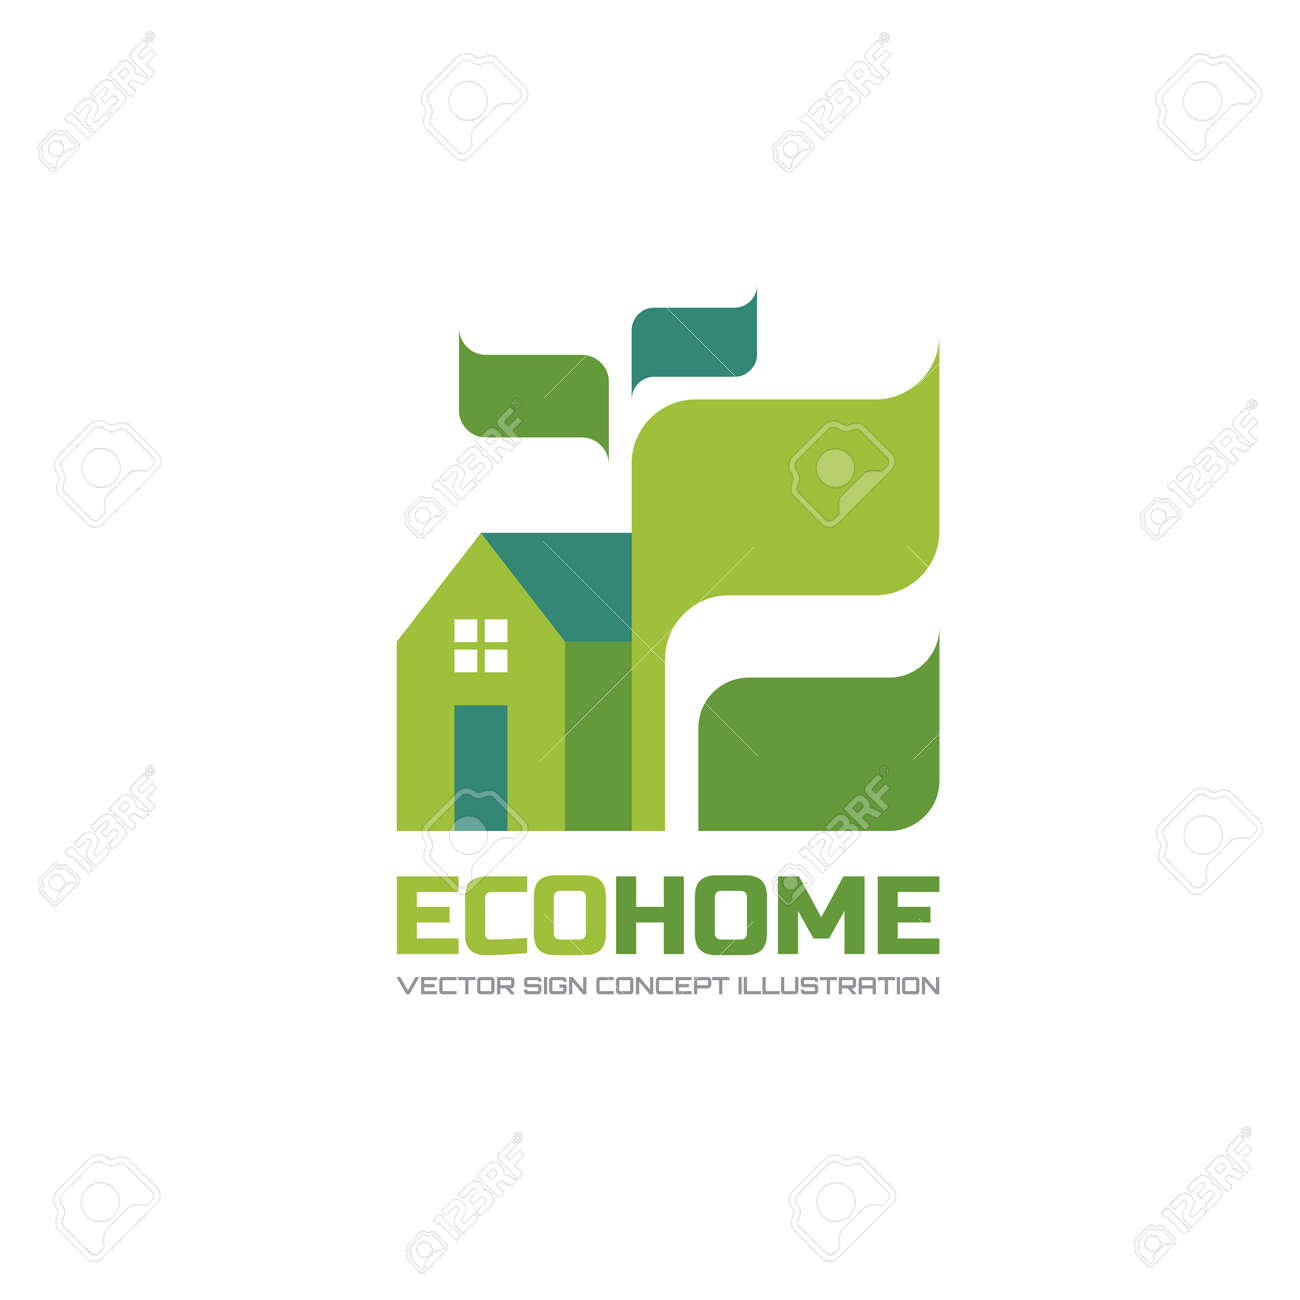 Eco Home - Vector Logo Concept Illustration In Flat Style Design ...